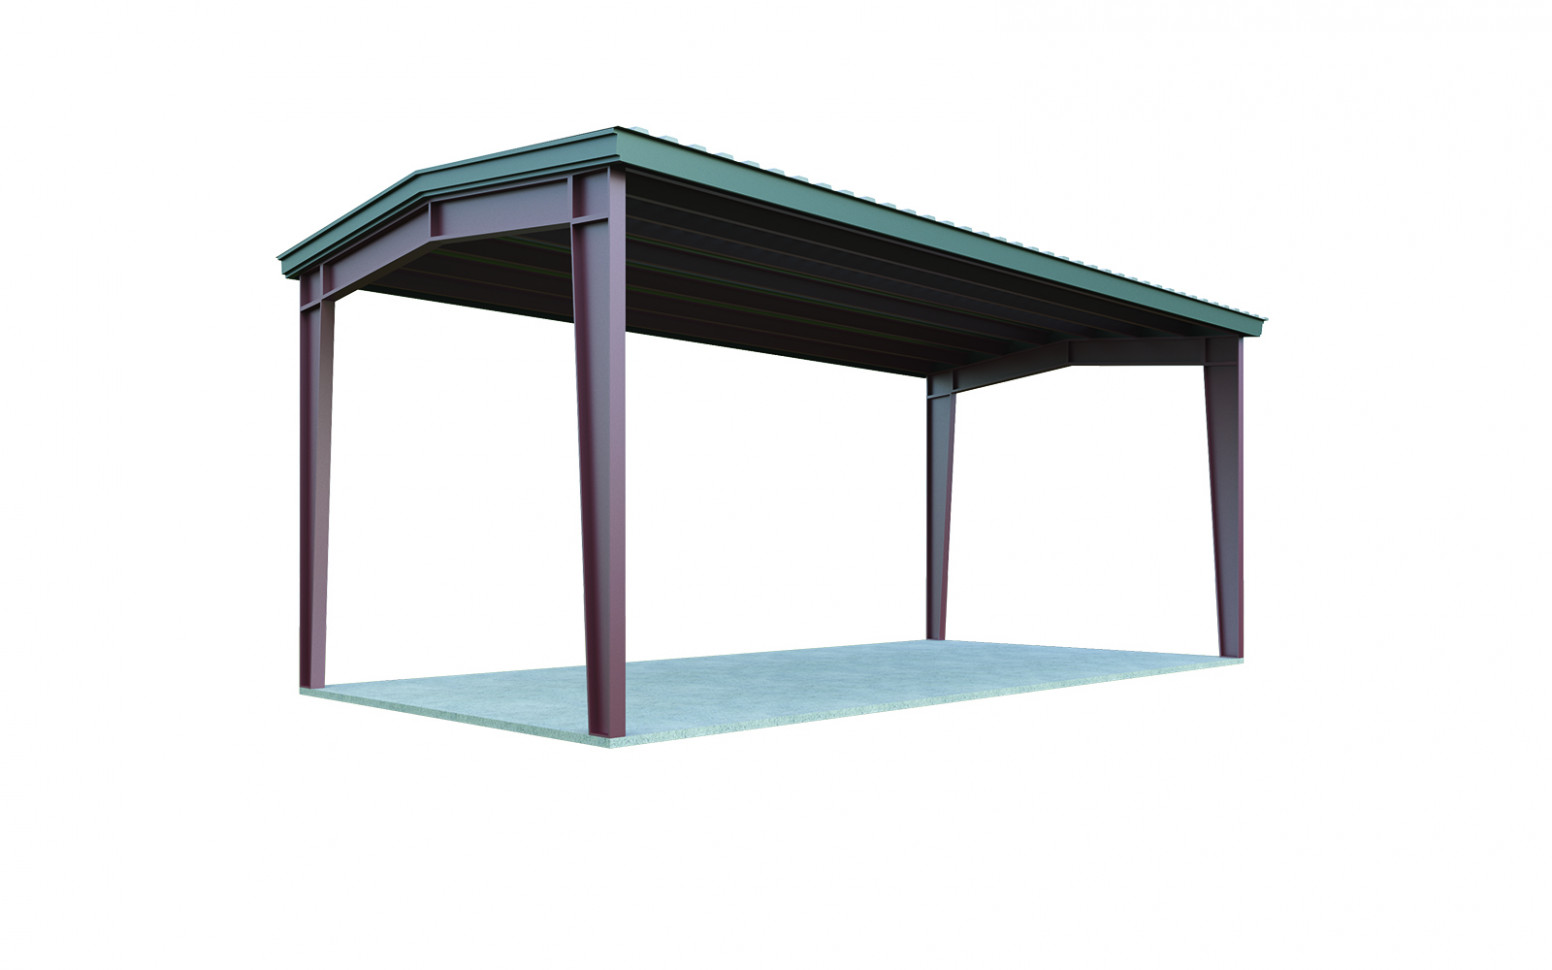 7x7 Carport: Perfect For Two Cars | General Steel Shop Prefab Wooden Carports